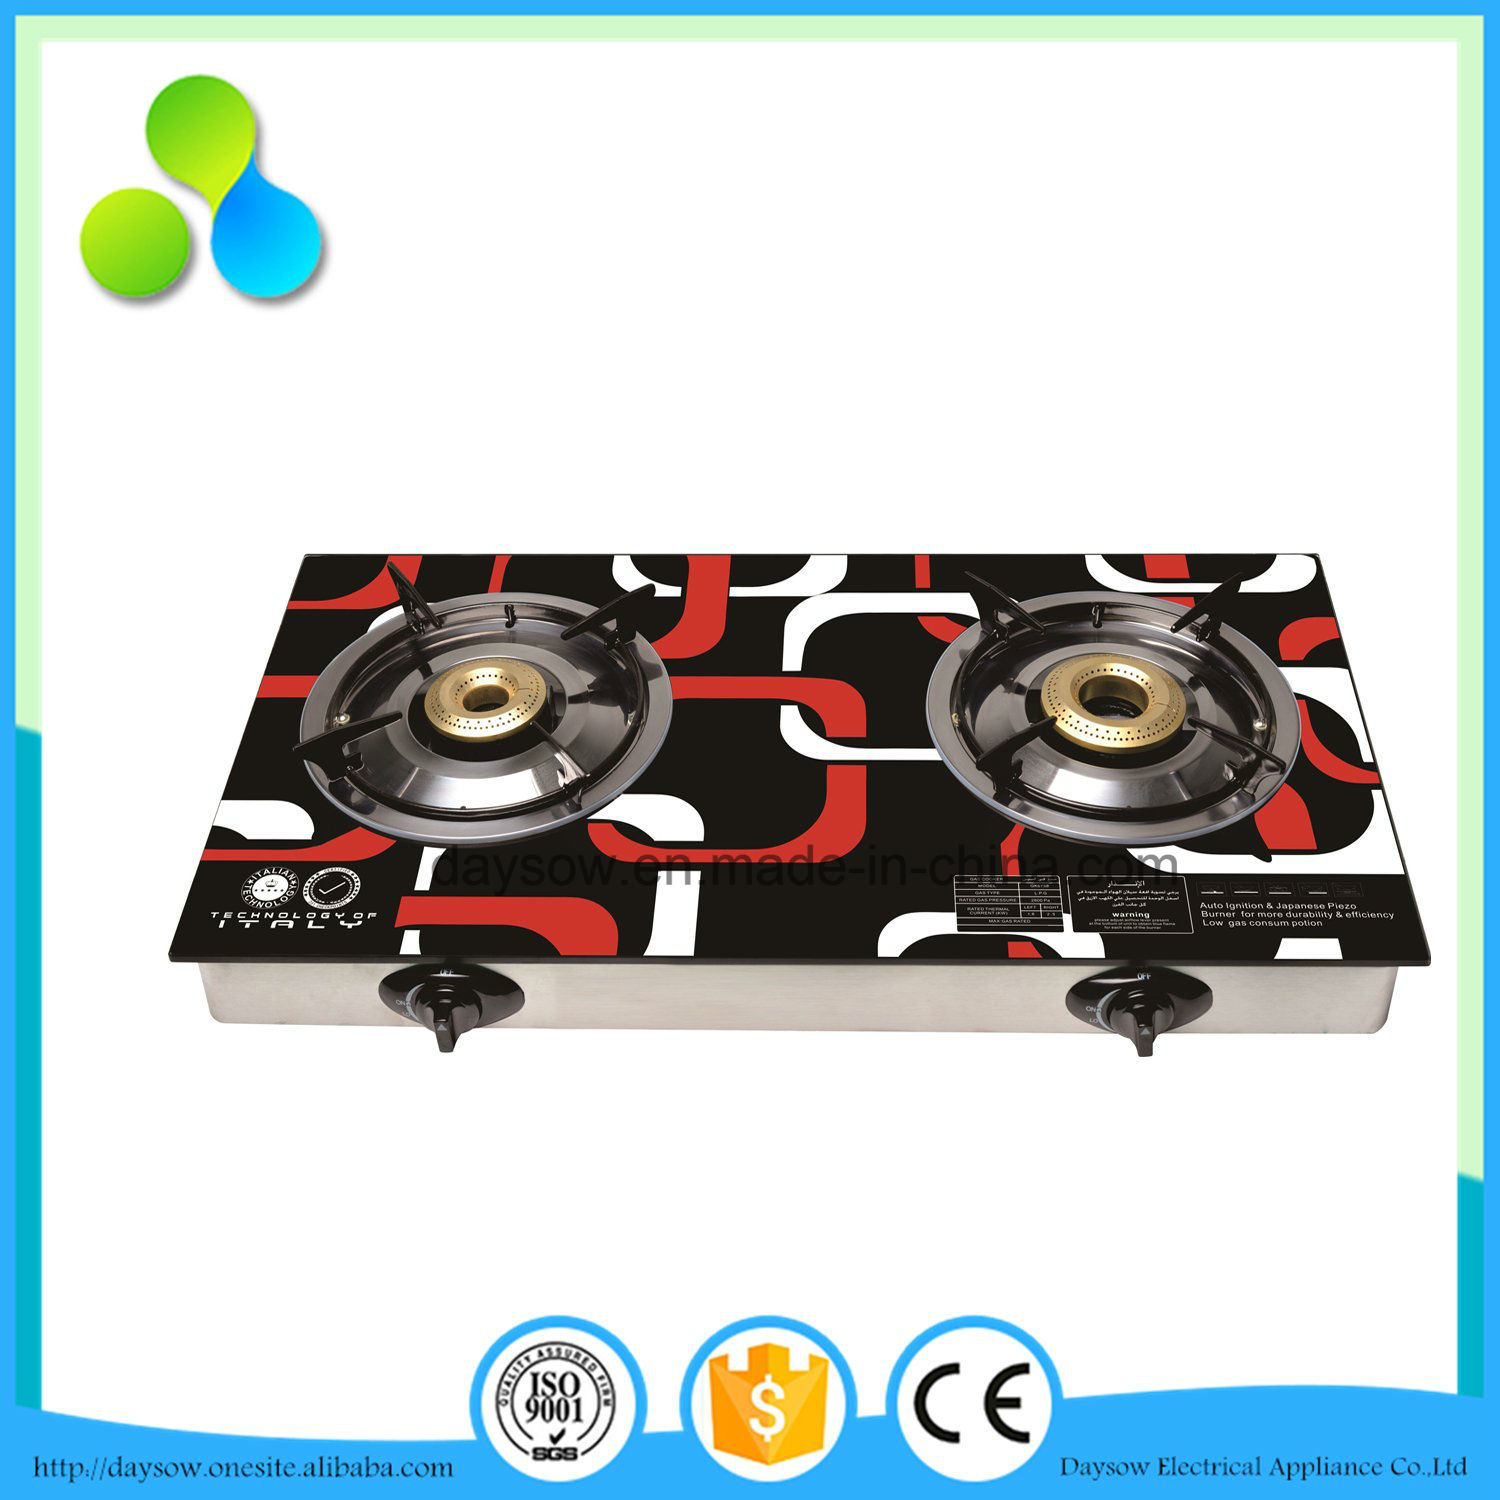 New Model Butterfly Gas Stove, Brass Burner Gas Cooker